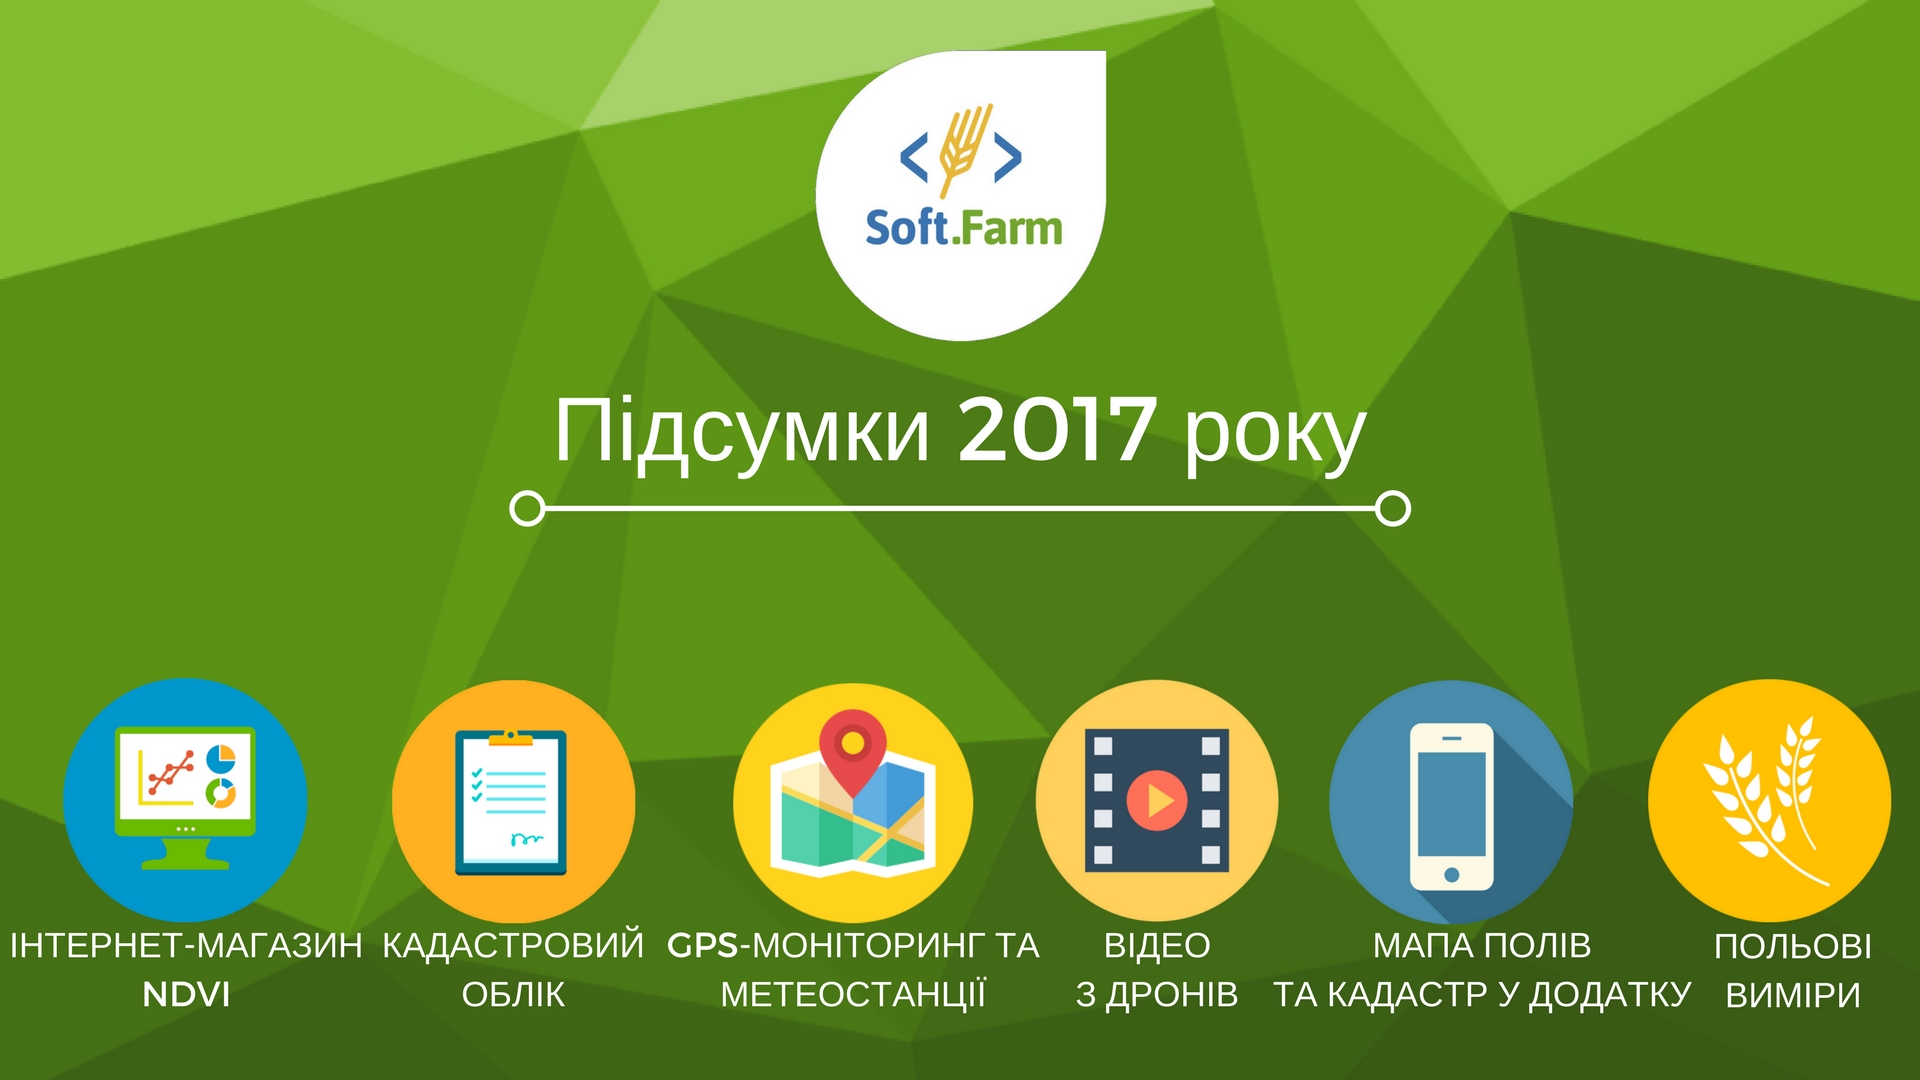 Results of 2017: what functions for plant growing was added to system Soft.Farm?